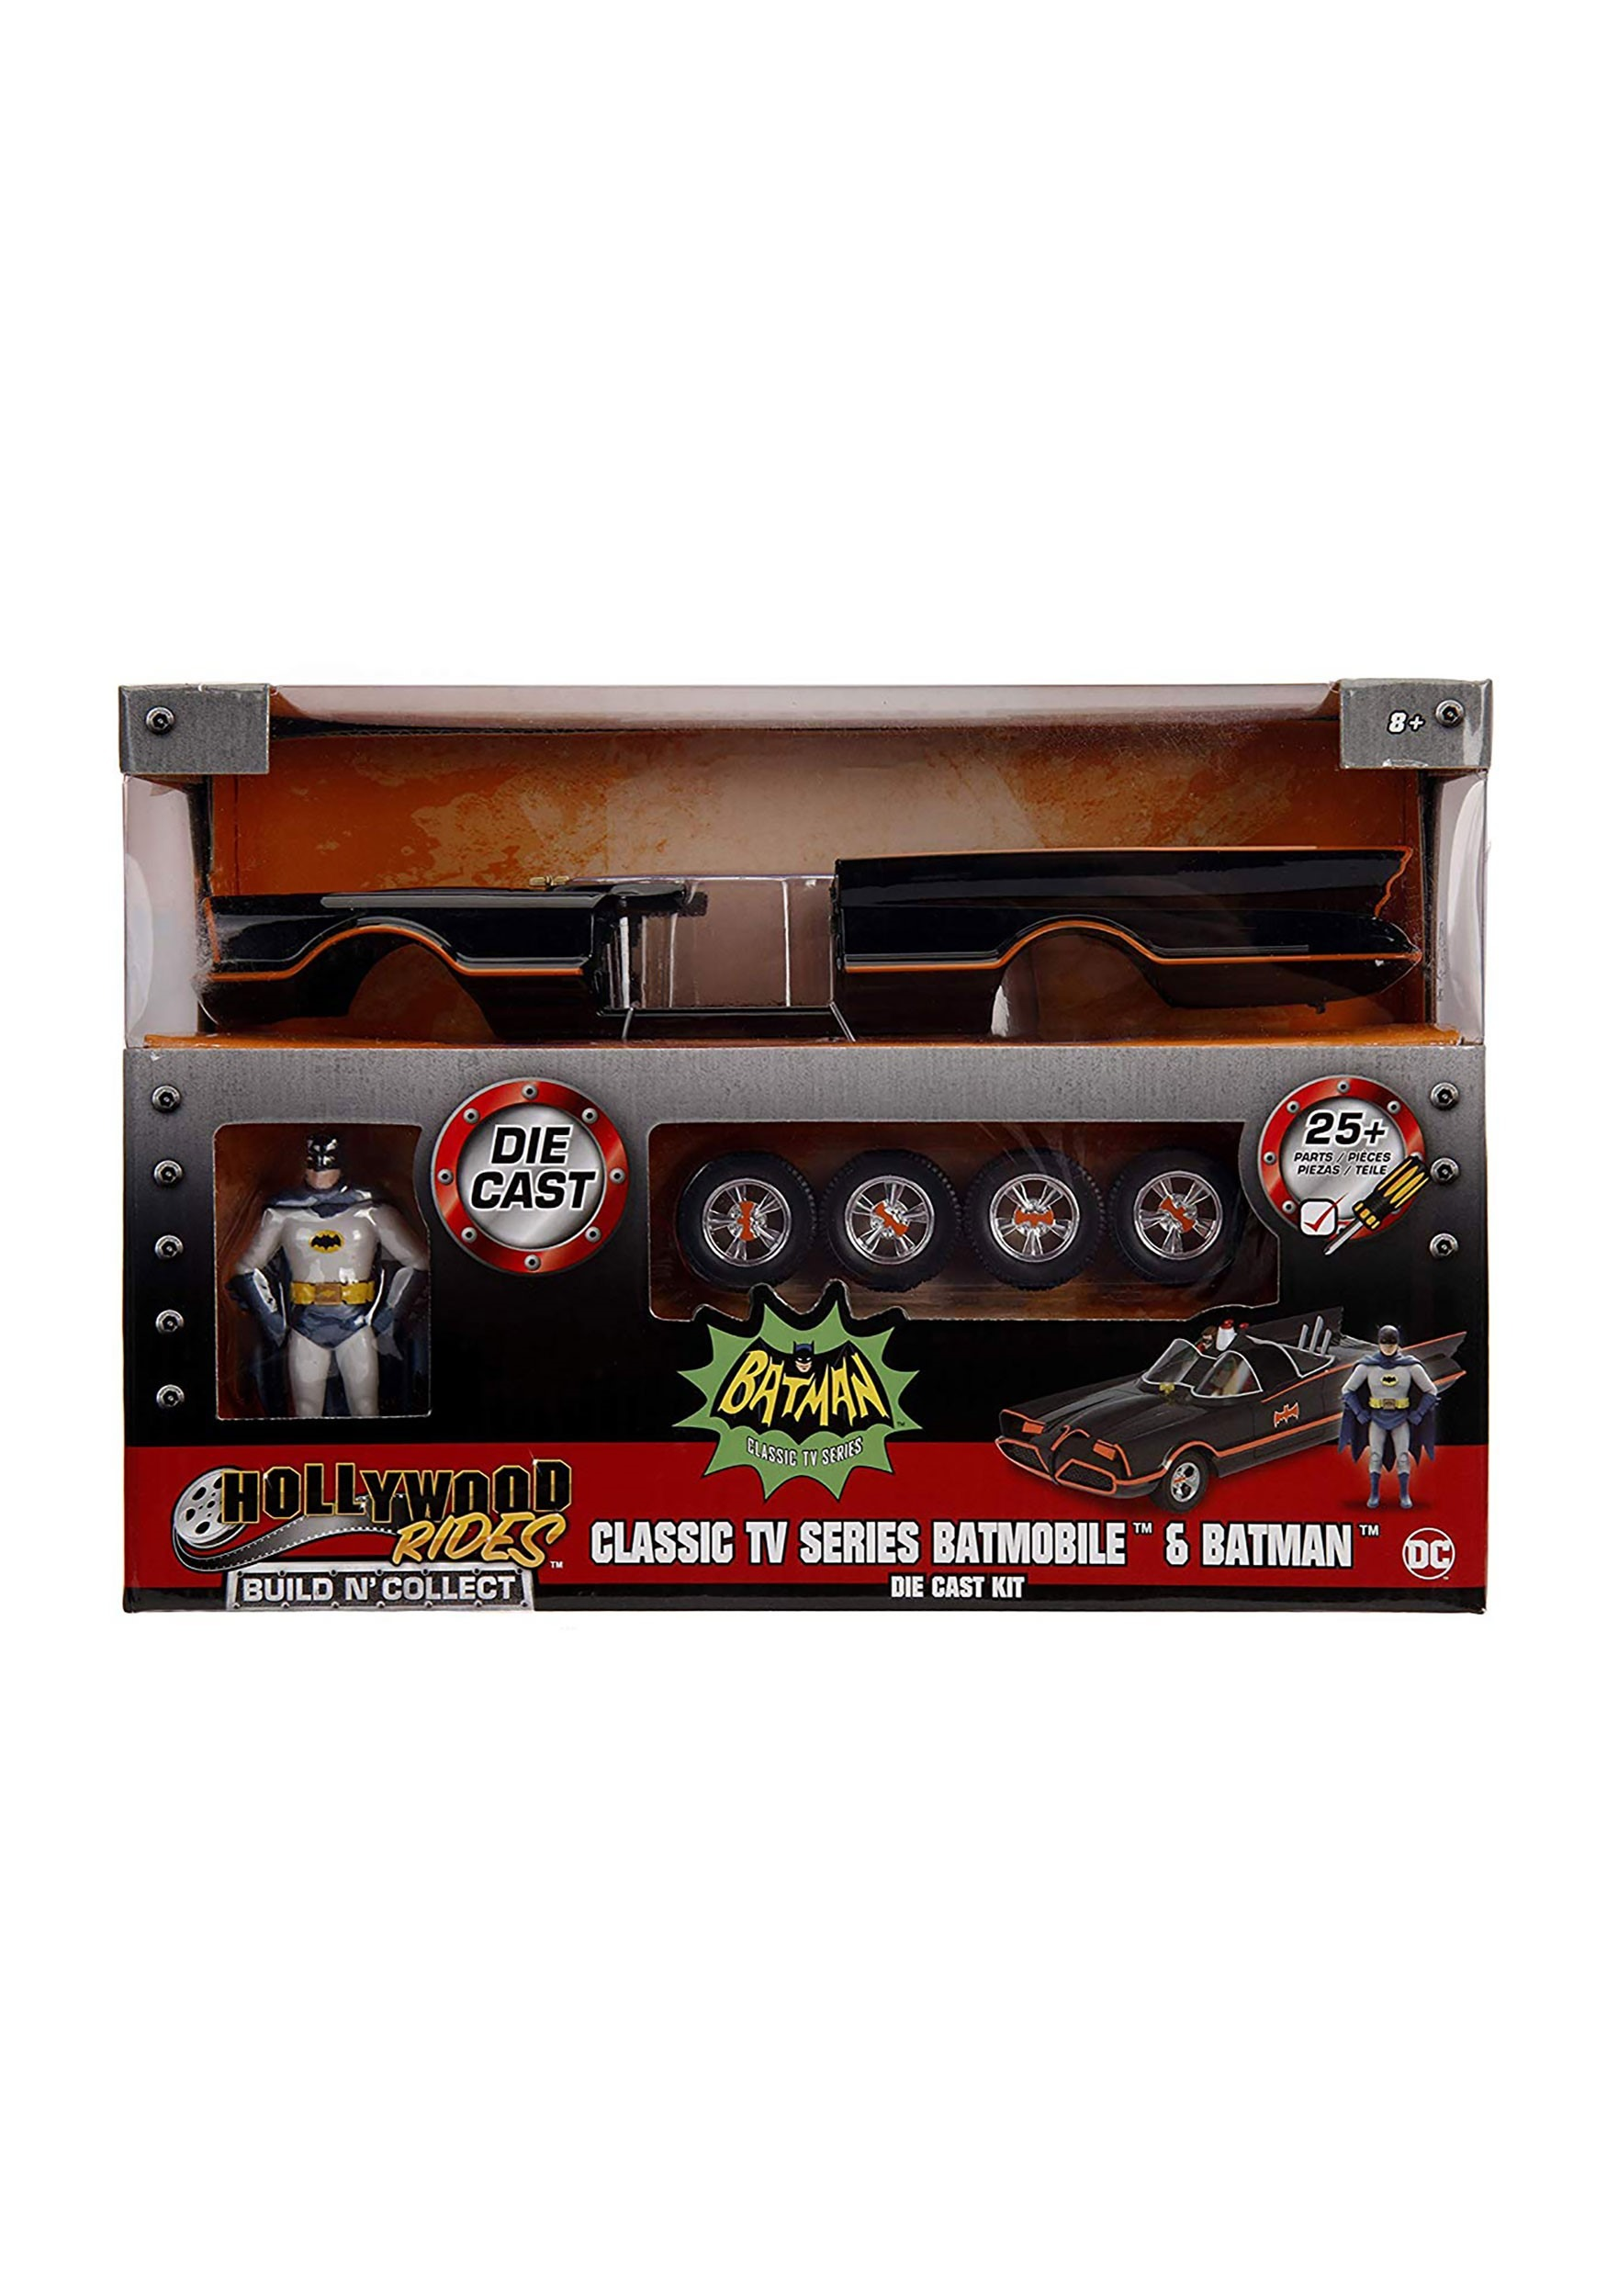 Batmobile Build N' Collect 1966 Classic TV Series